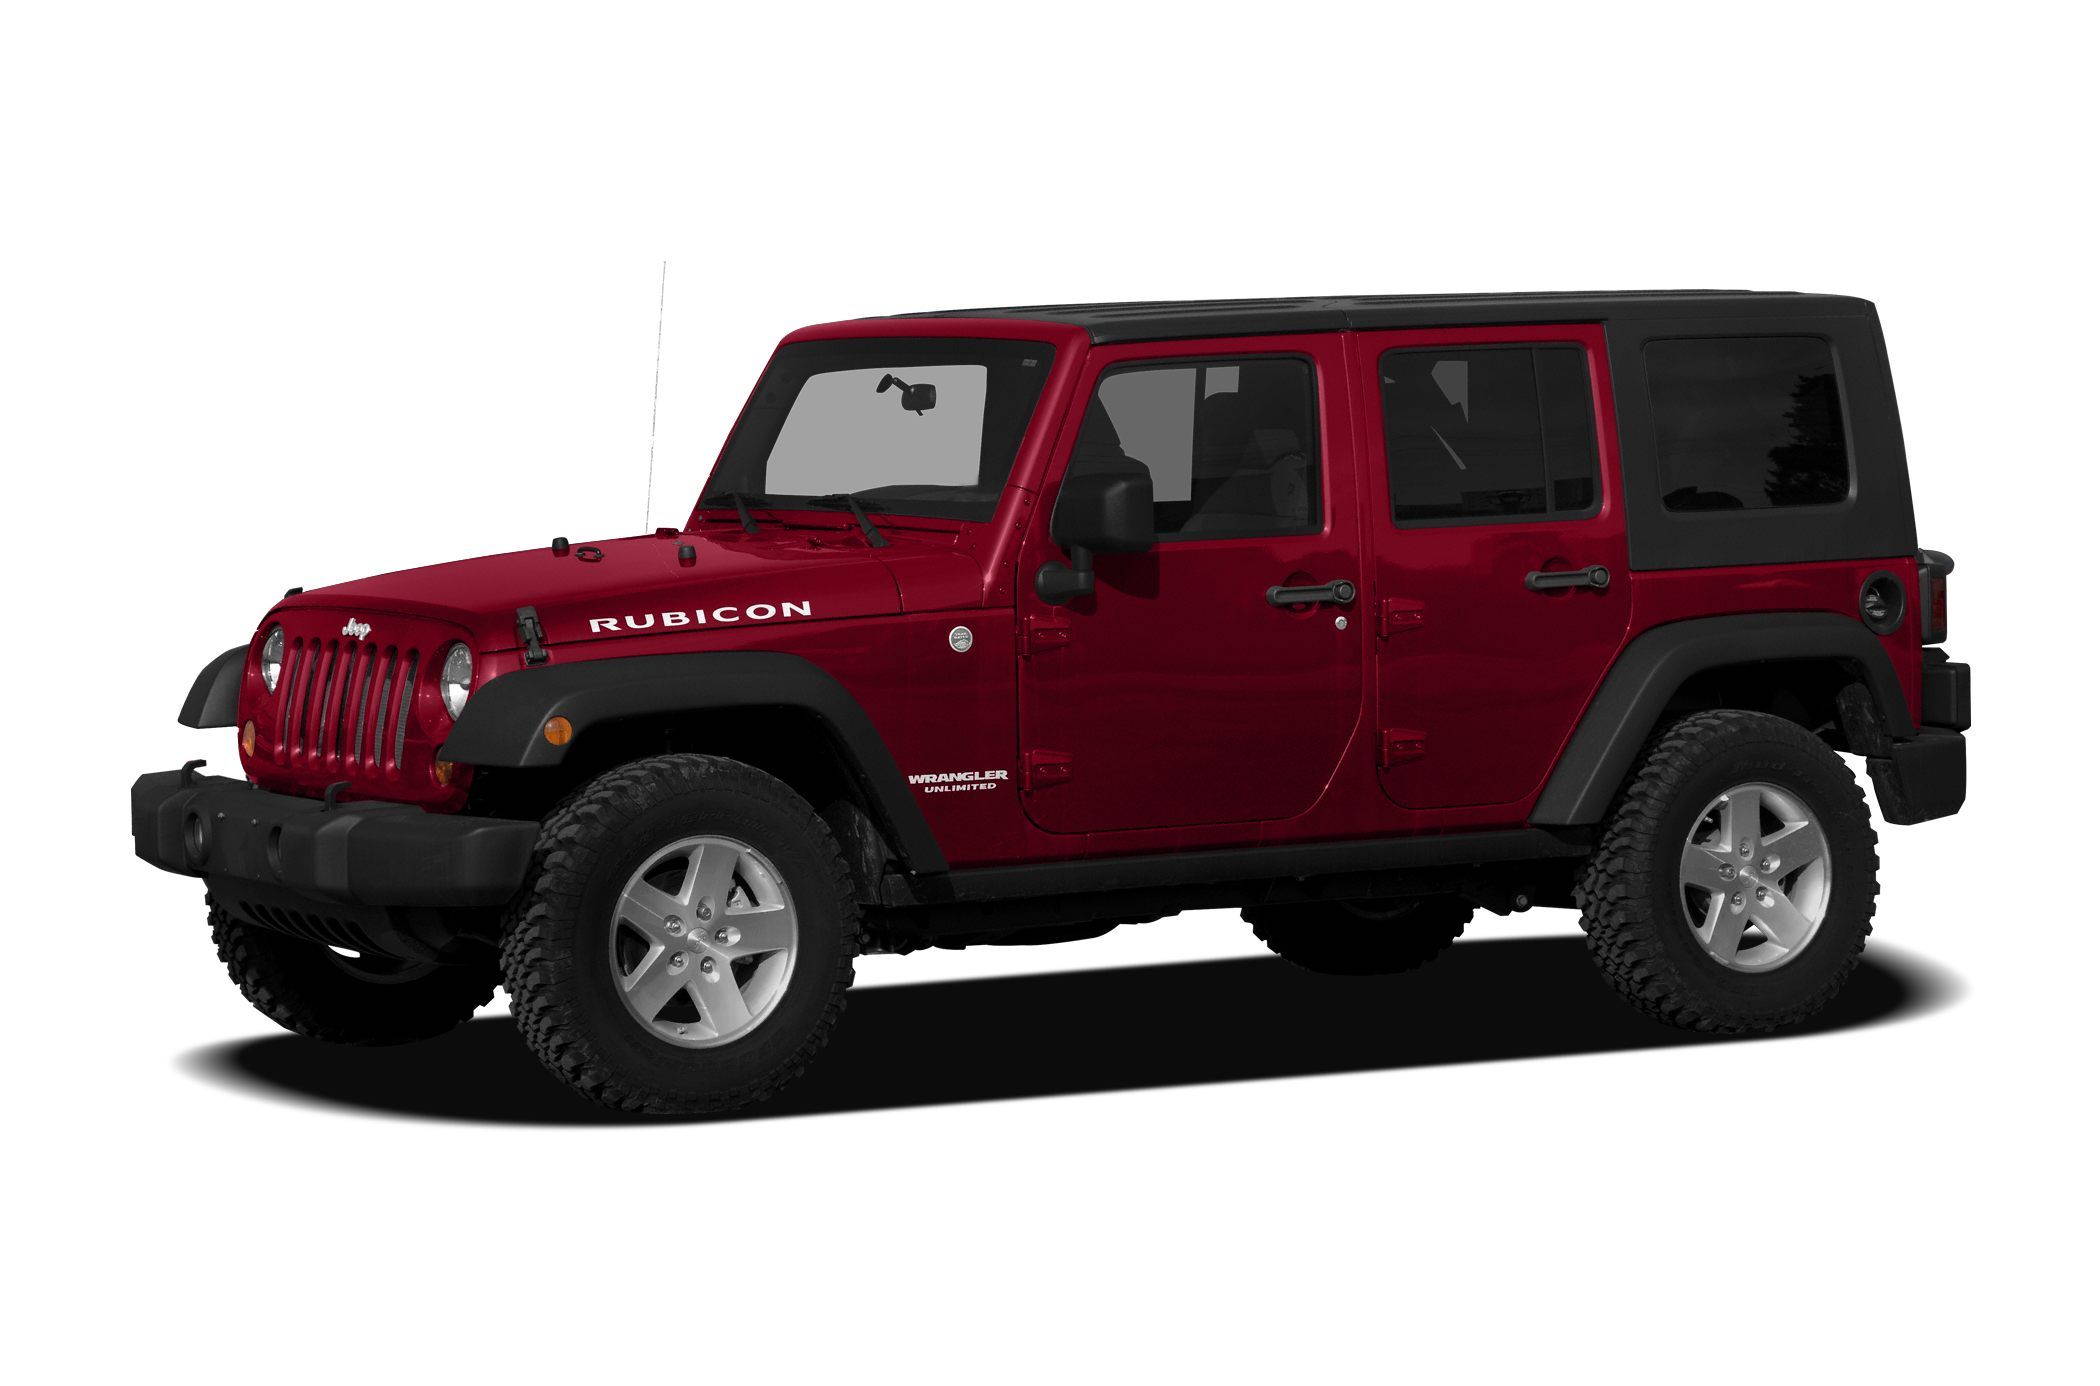 2008 Jeep Wrangler Unlimited X Visit New 2 You Pre Owned Specialist online at new2youpreownedcom